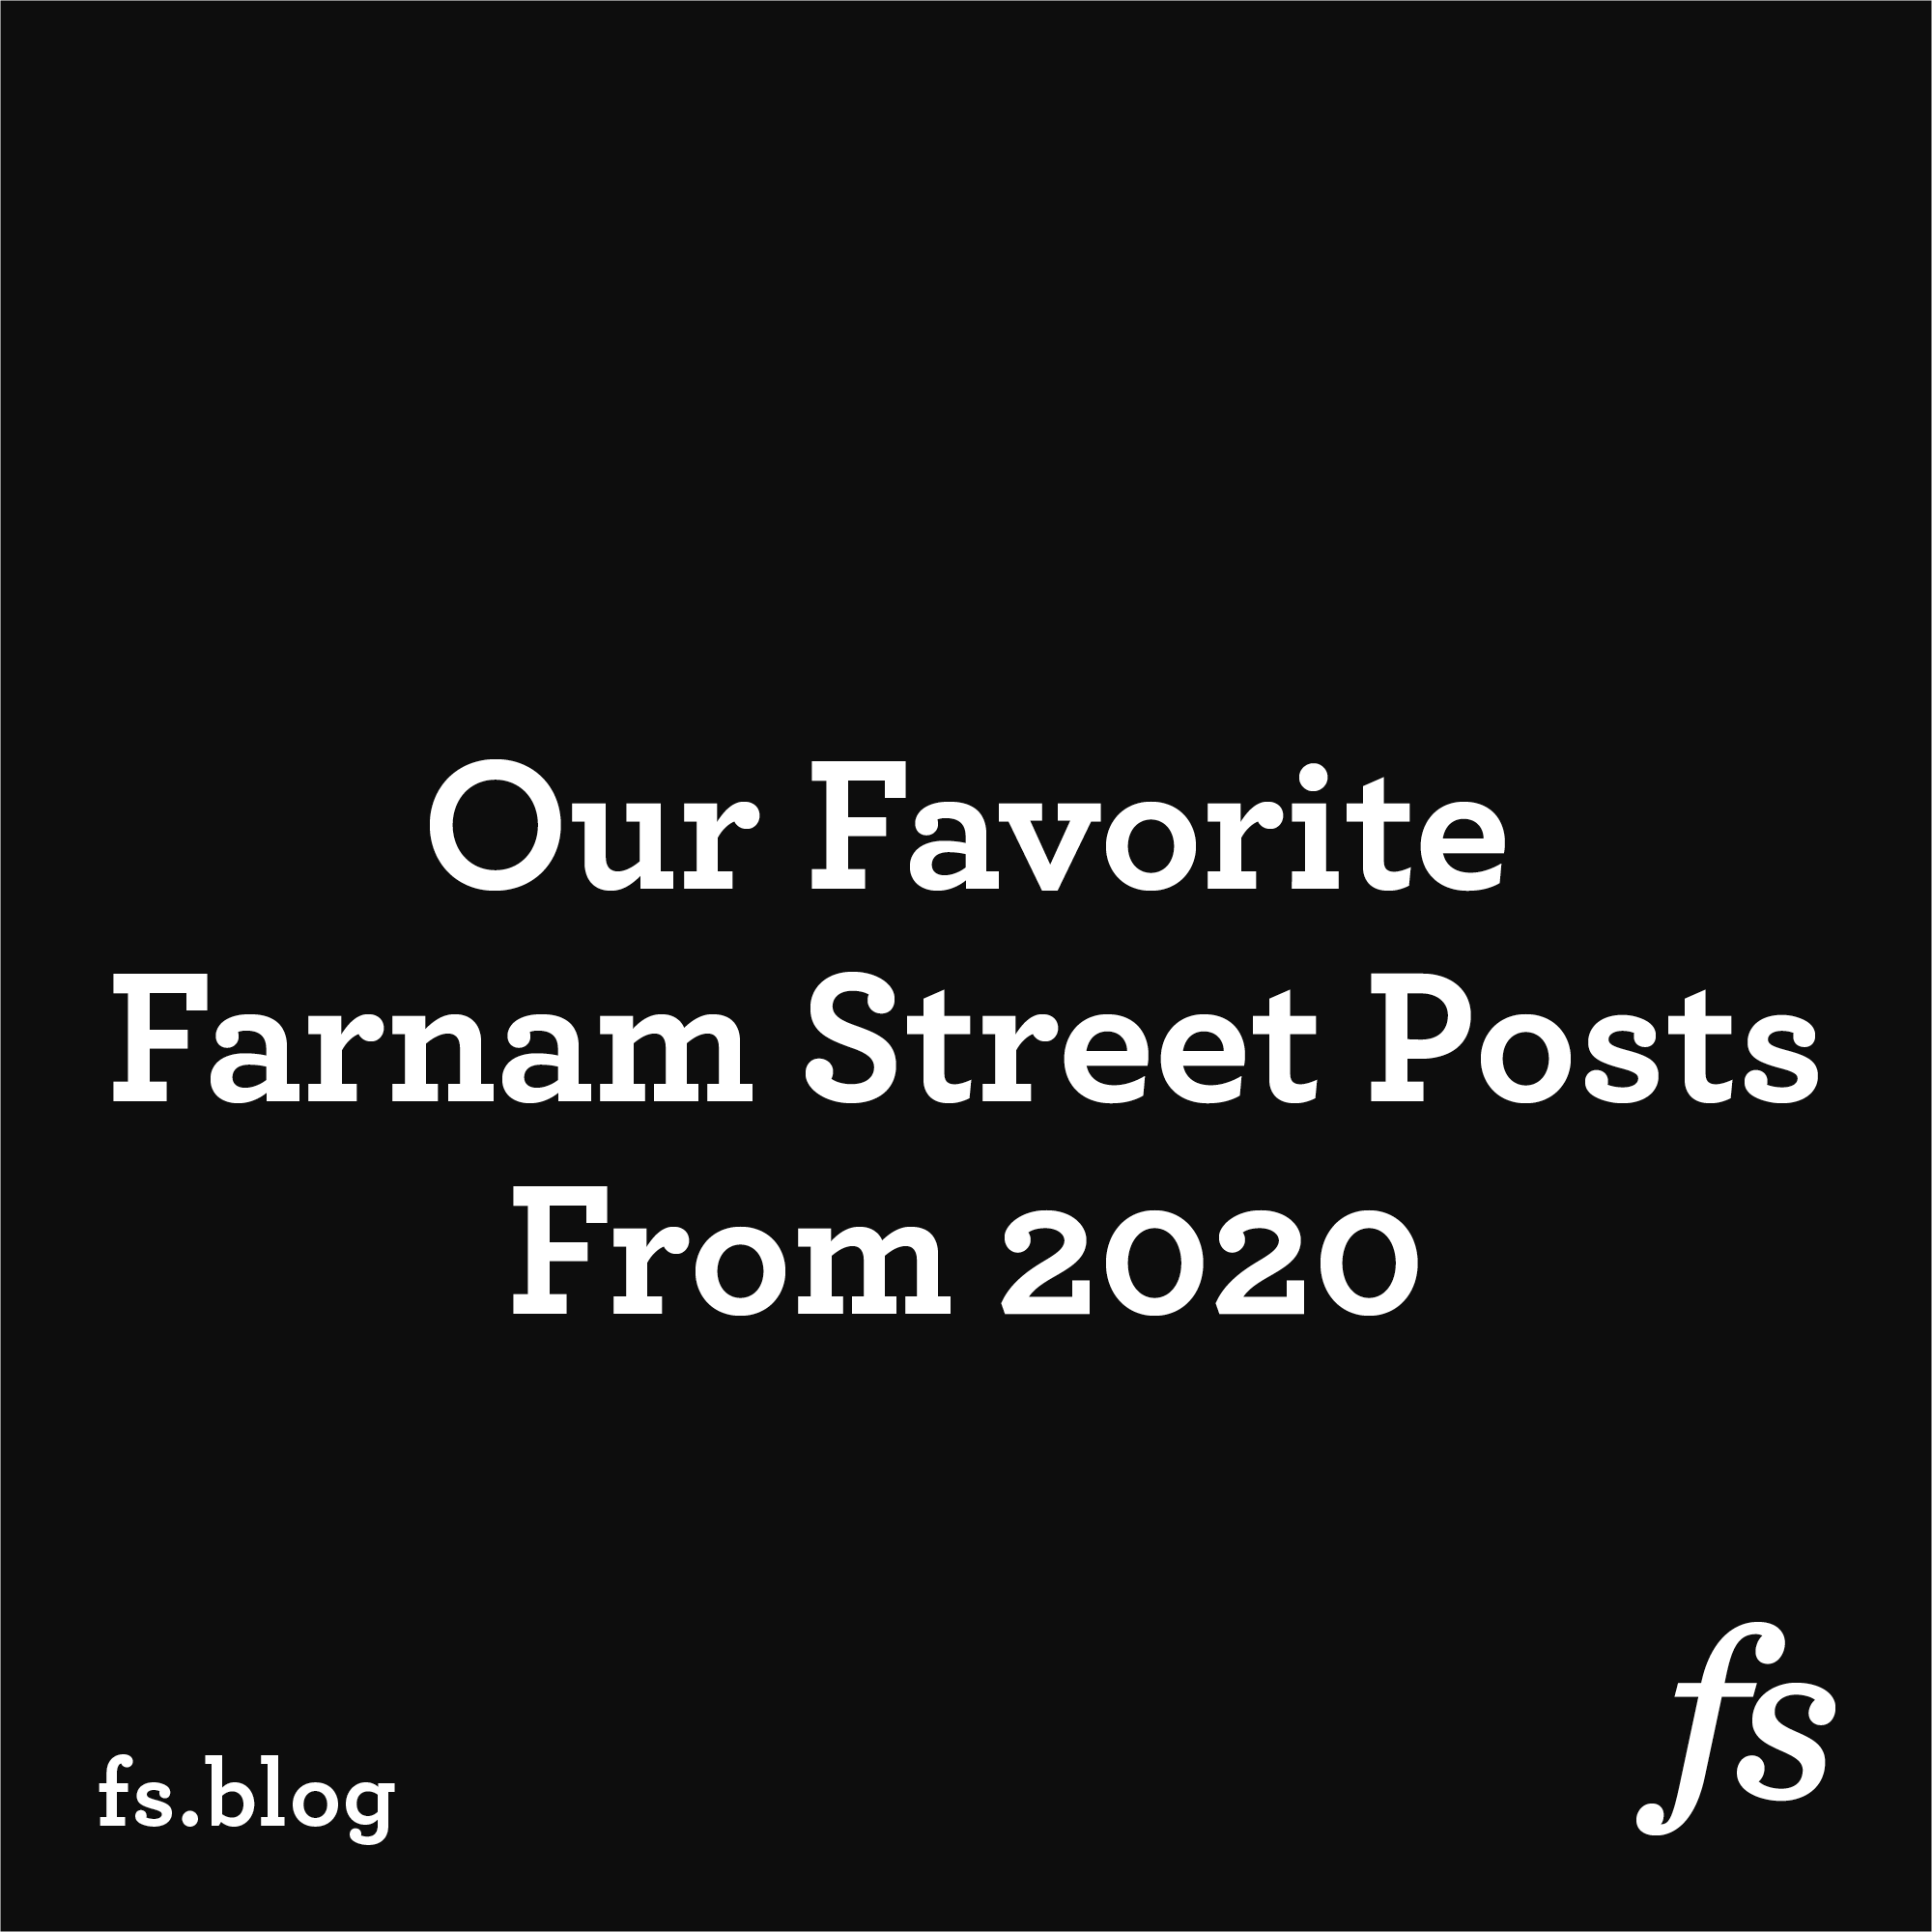 Our Favorite Farnam Street Posts From 2020